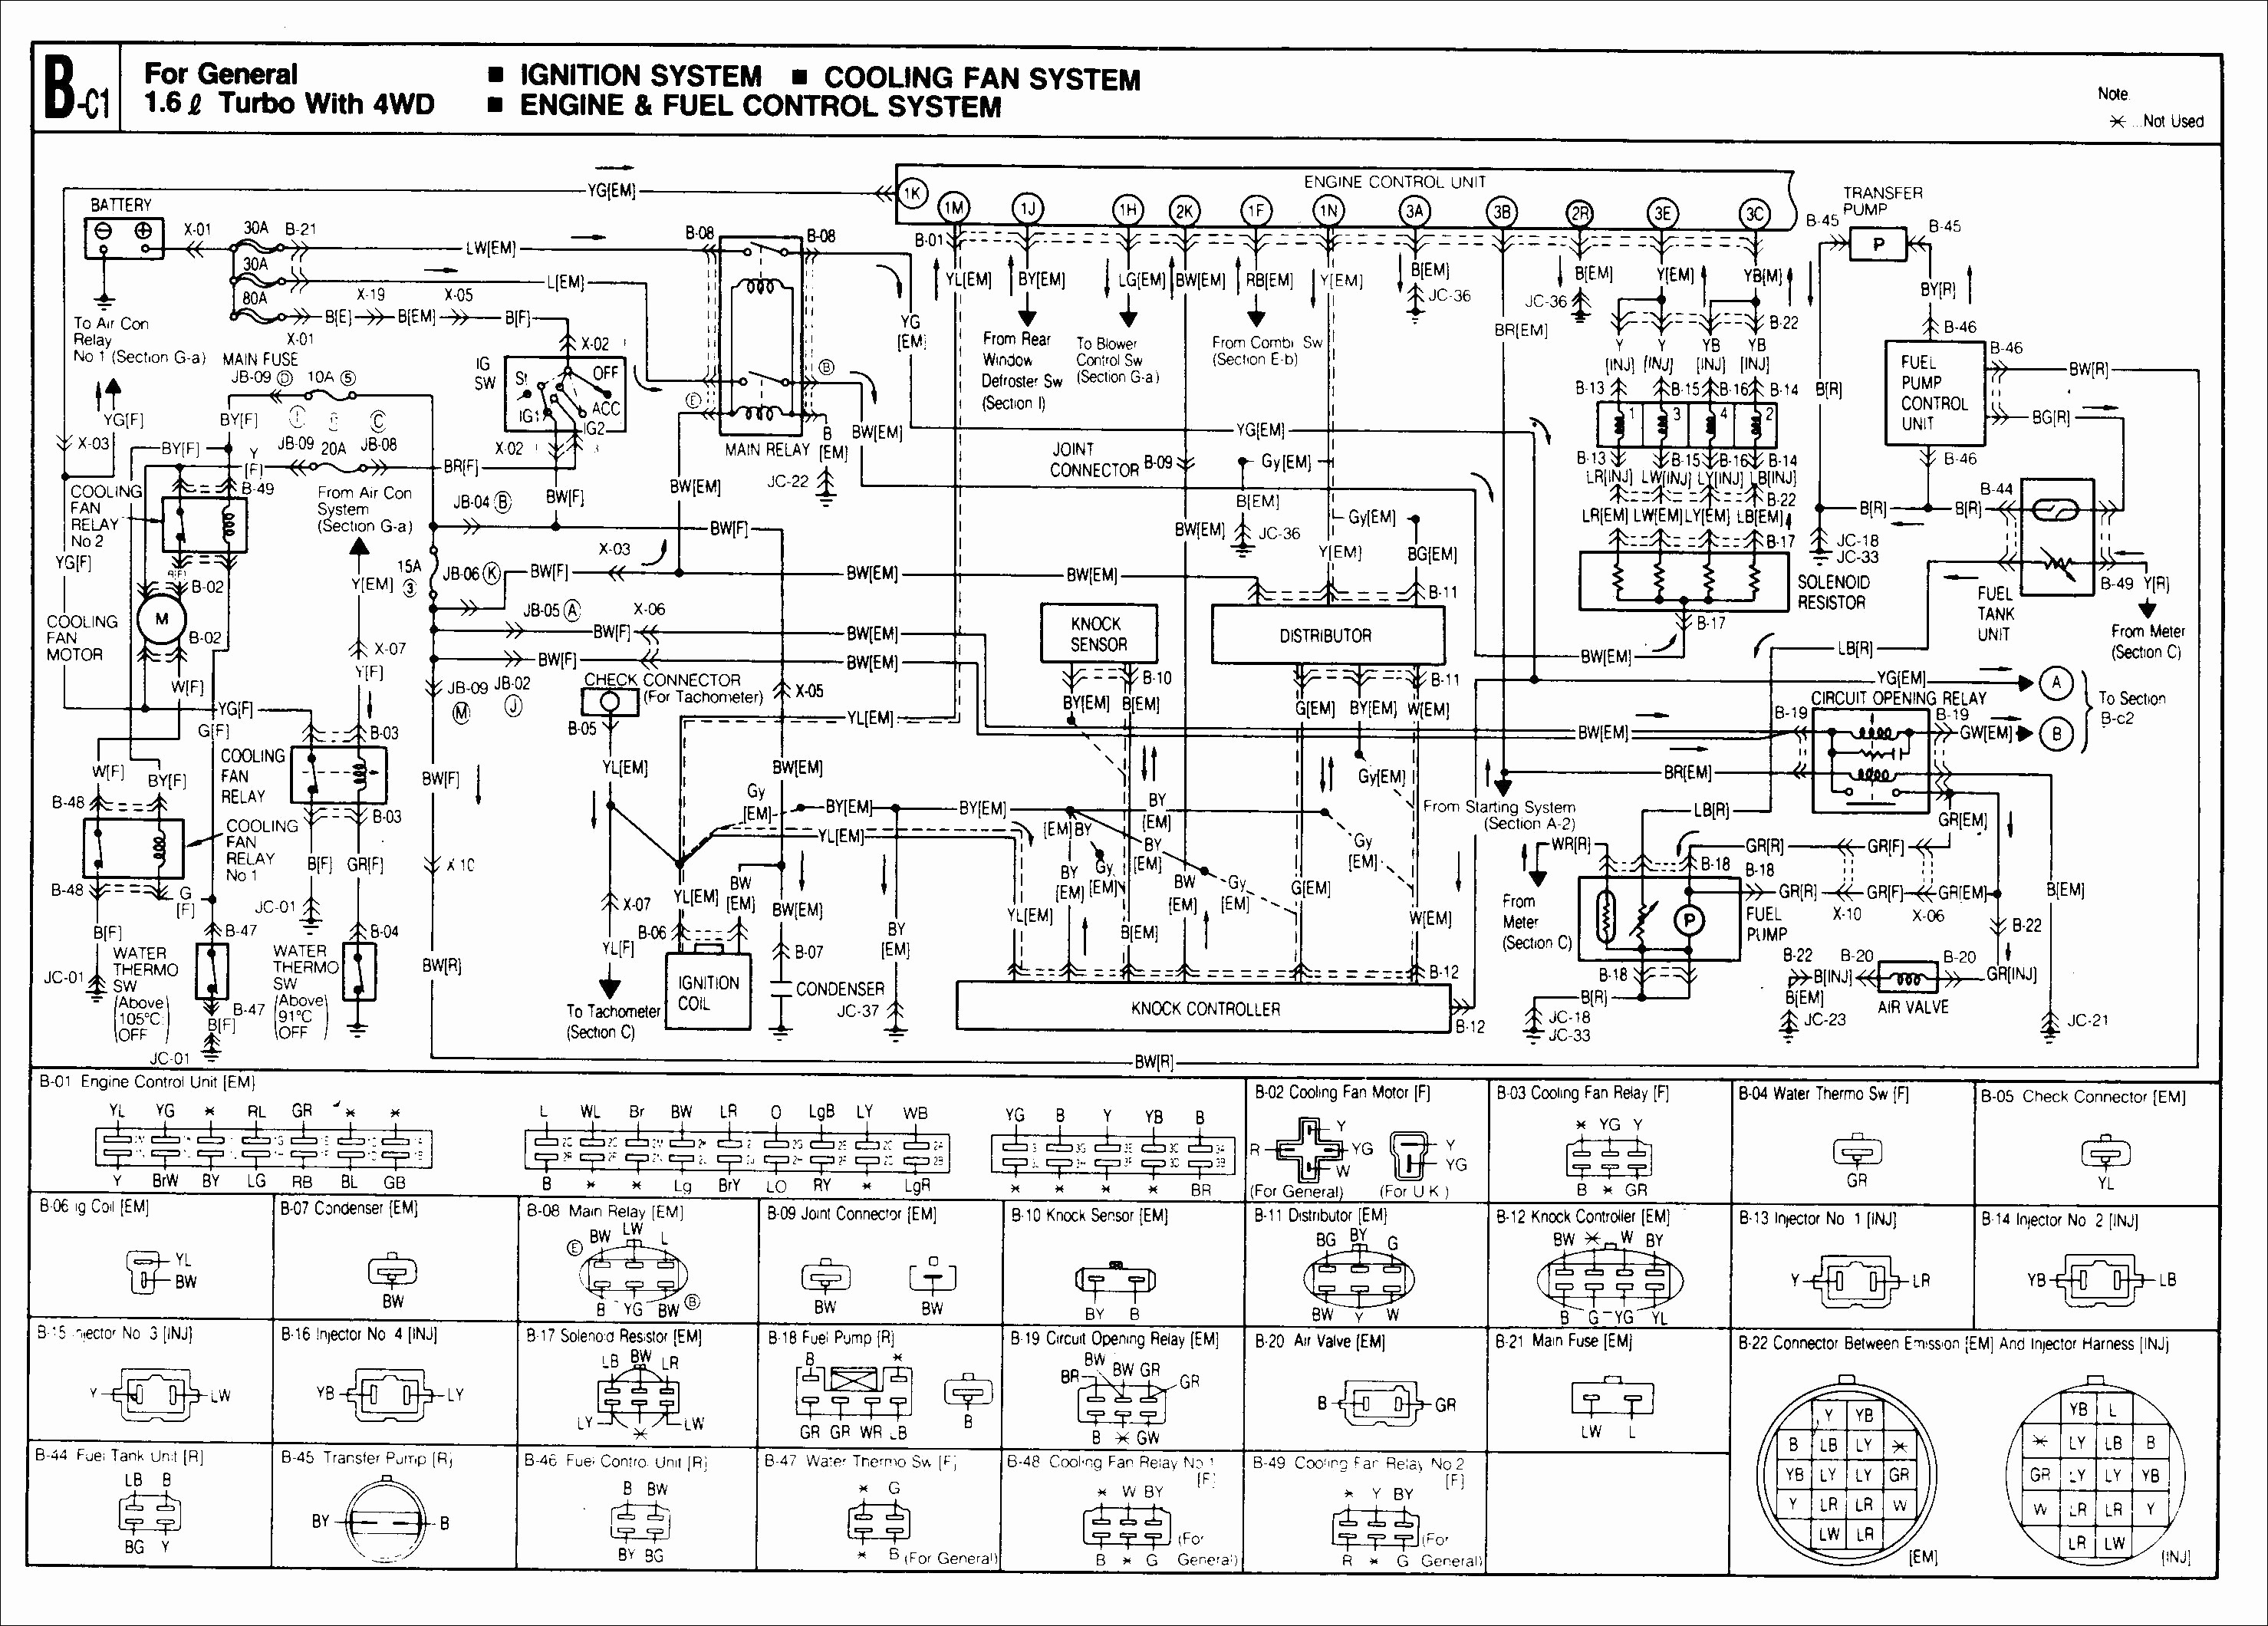 Bluebird Alternator Wiring Schematics 2004 Western Star Engine Firewall Diagram 3 4l V6 Gm Heater Core Hose